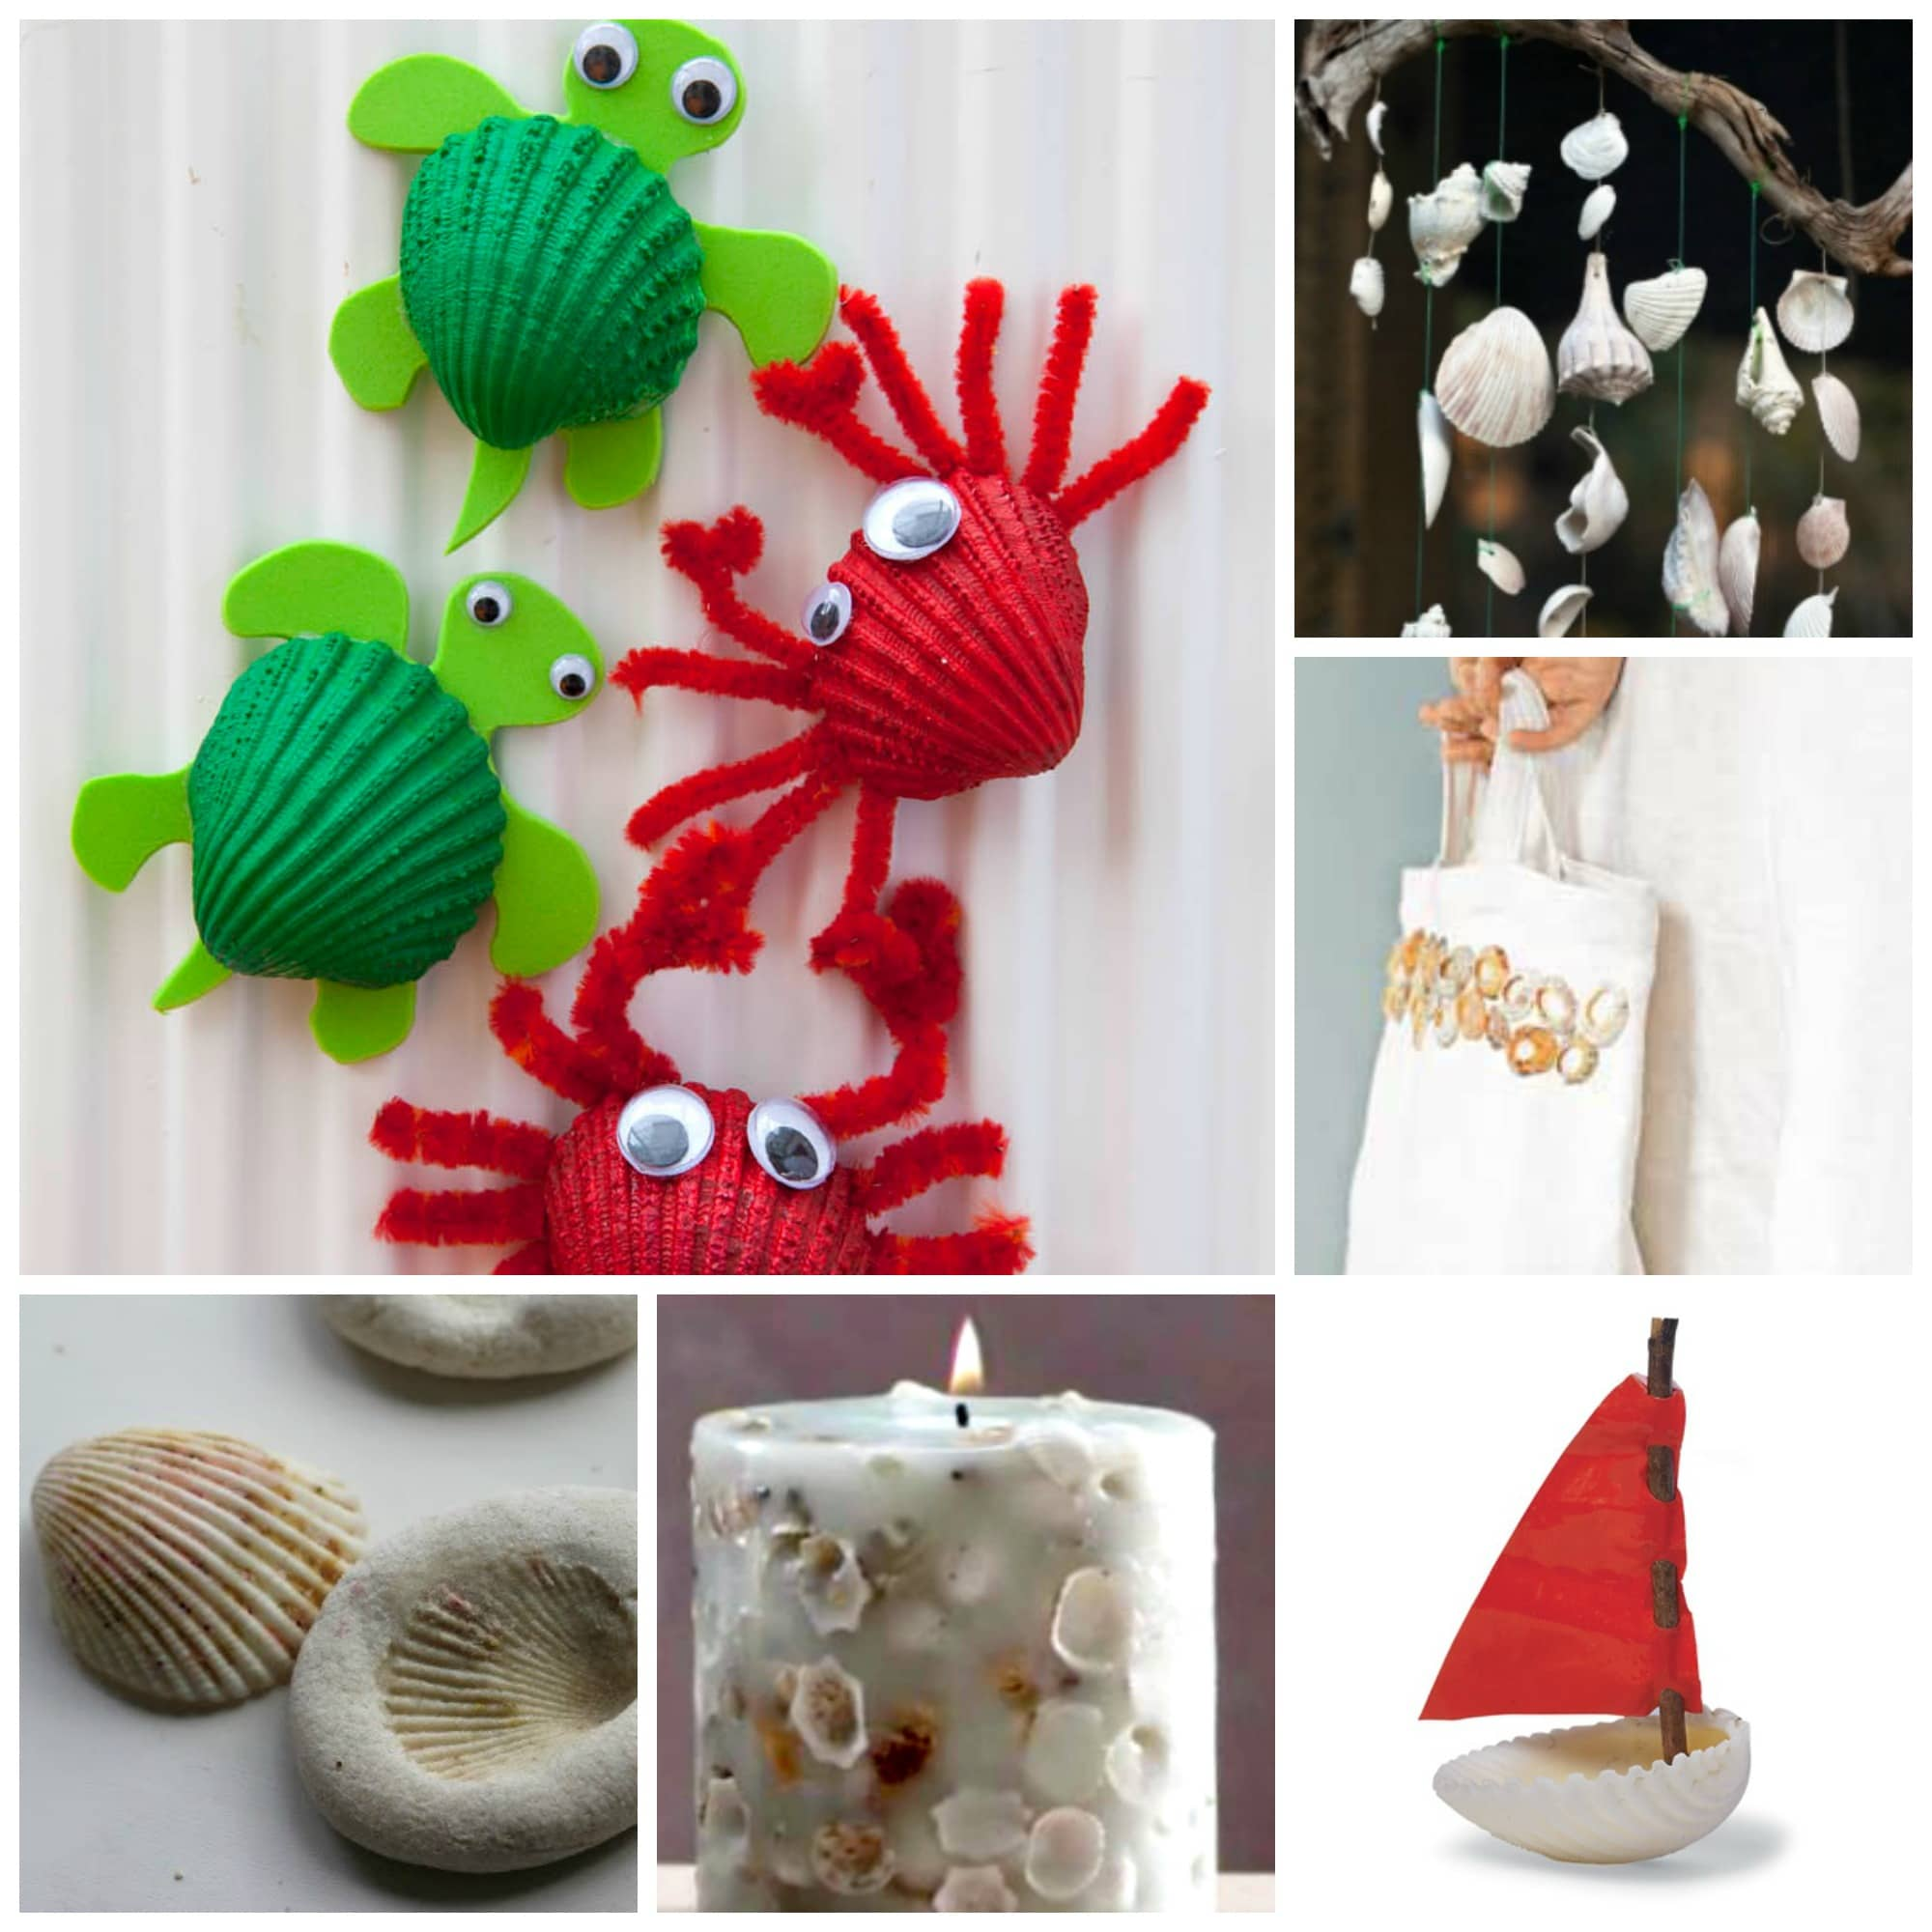 37 Sea Shell Craft Ideas Red Ted Art Make Crafting With Kids Easy Fun